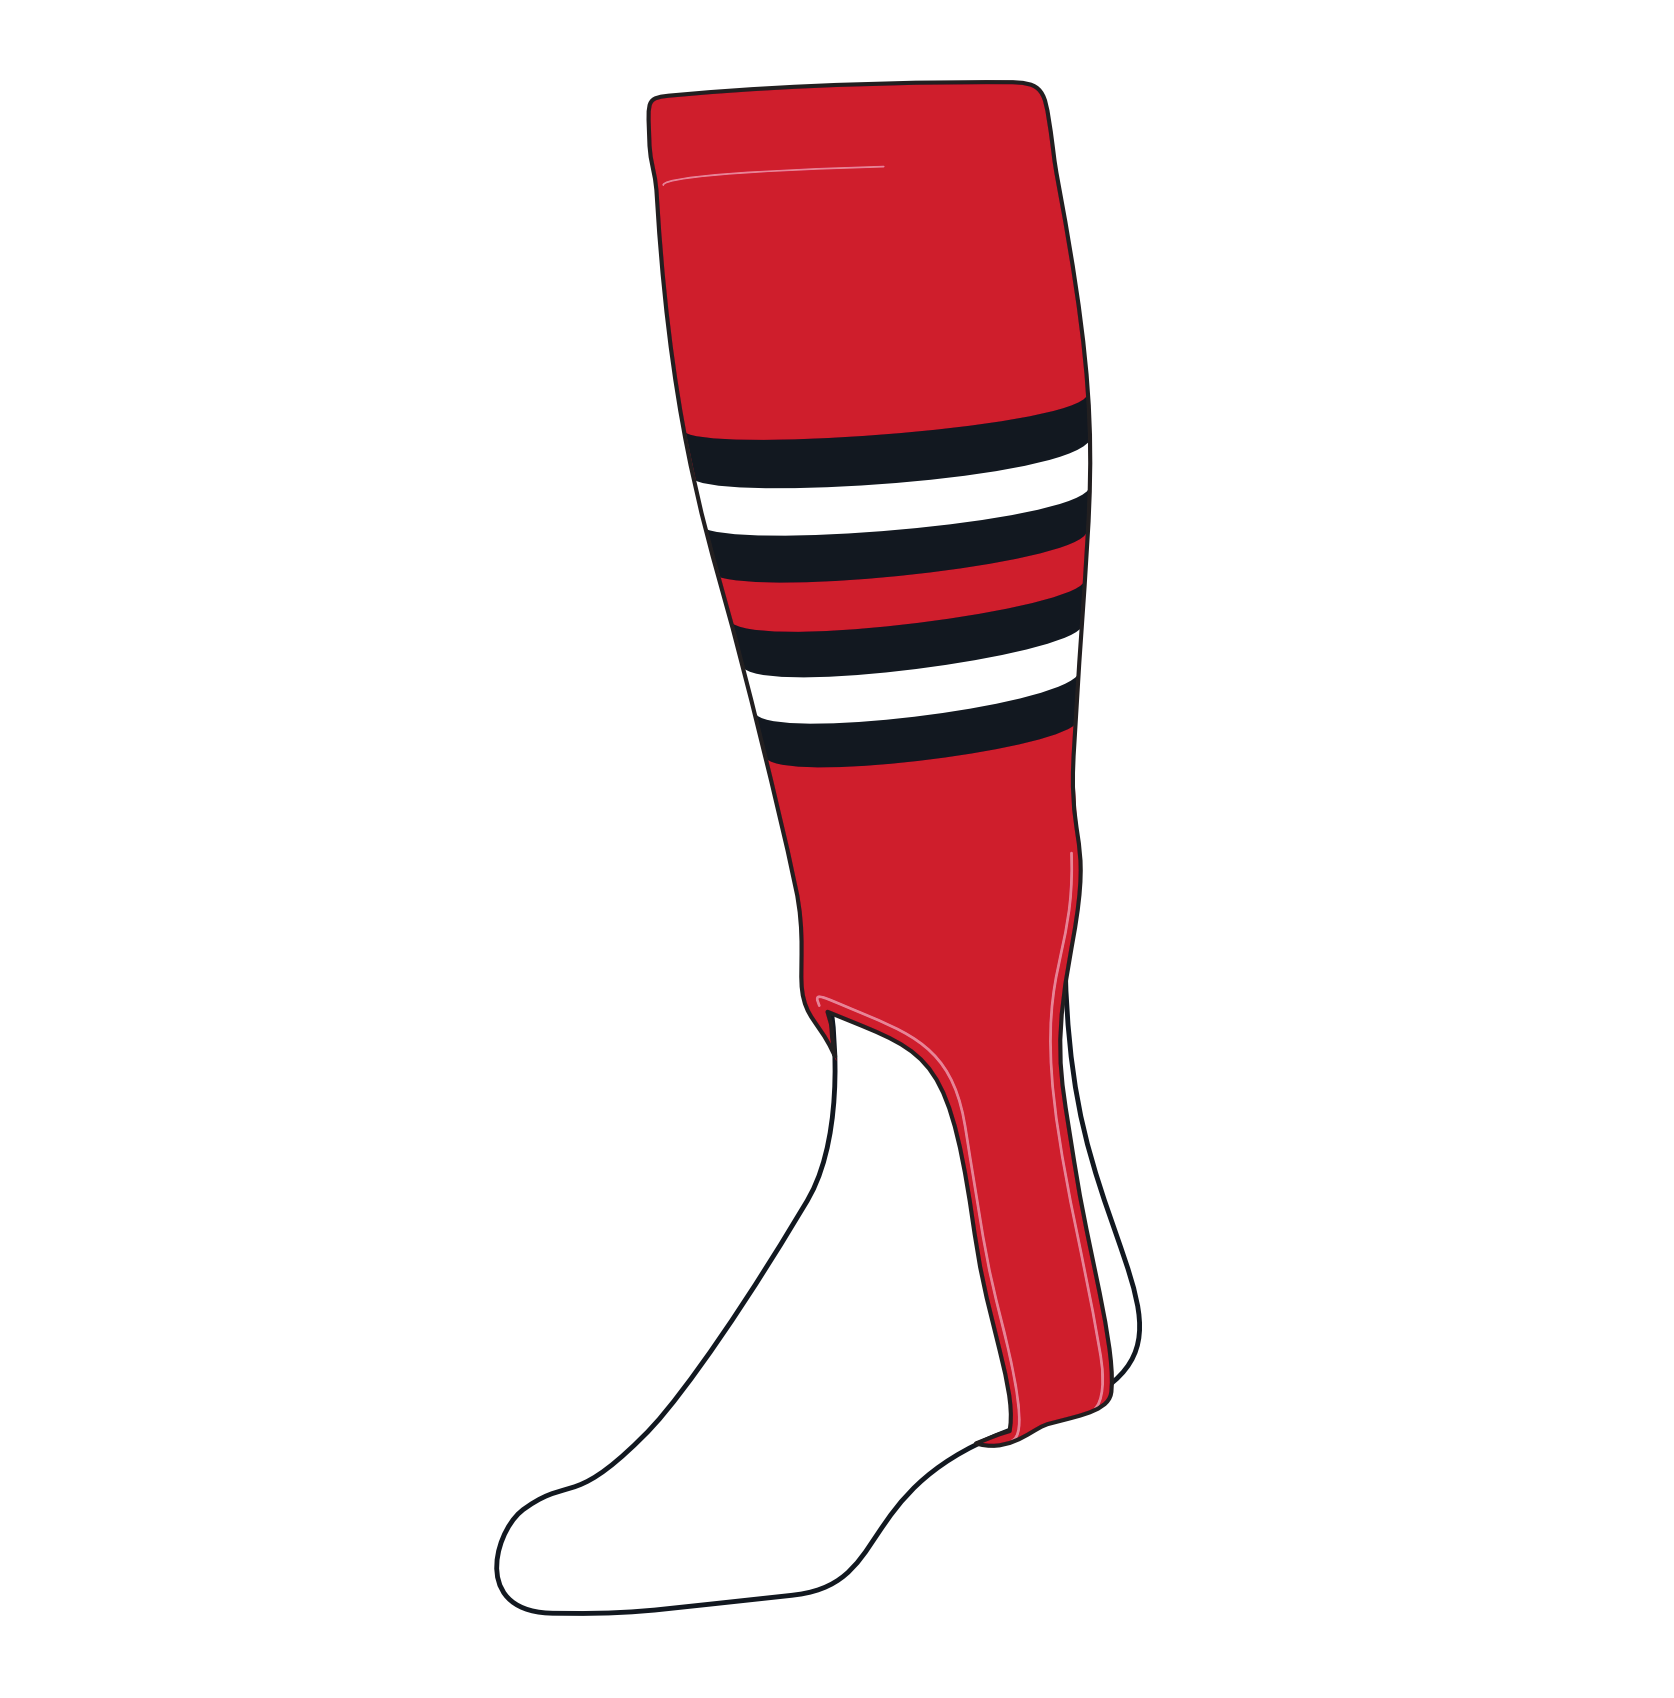 TCK Baseball Stirrups Medium (200I, 5in) Red, Black, White